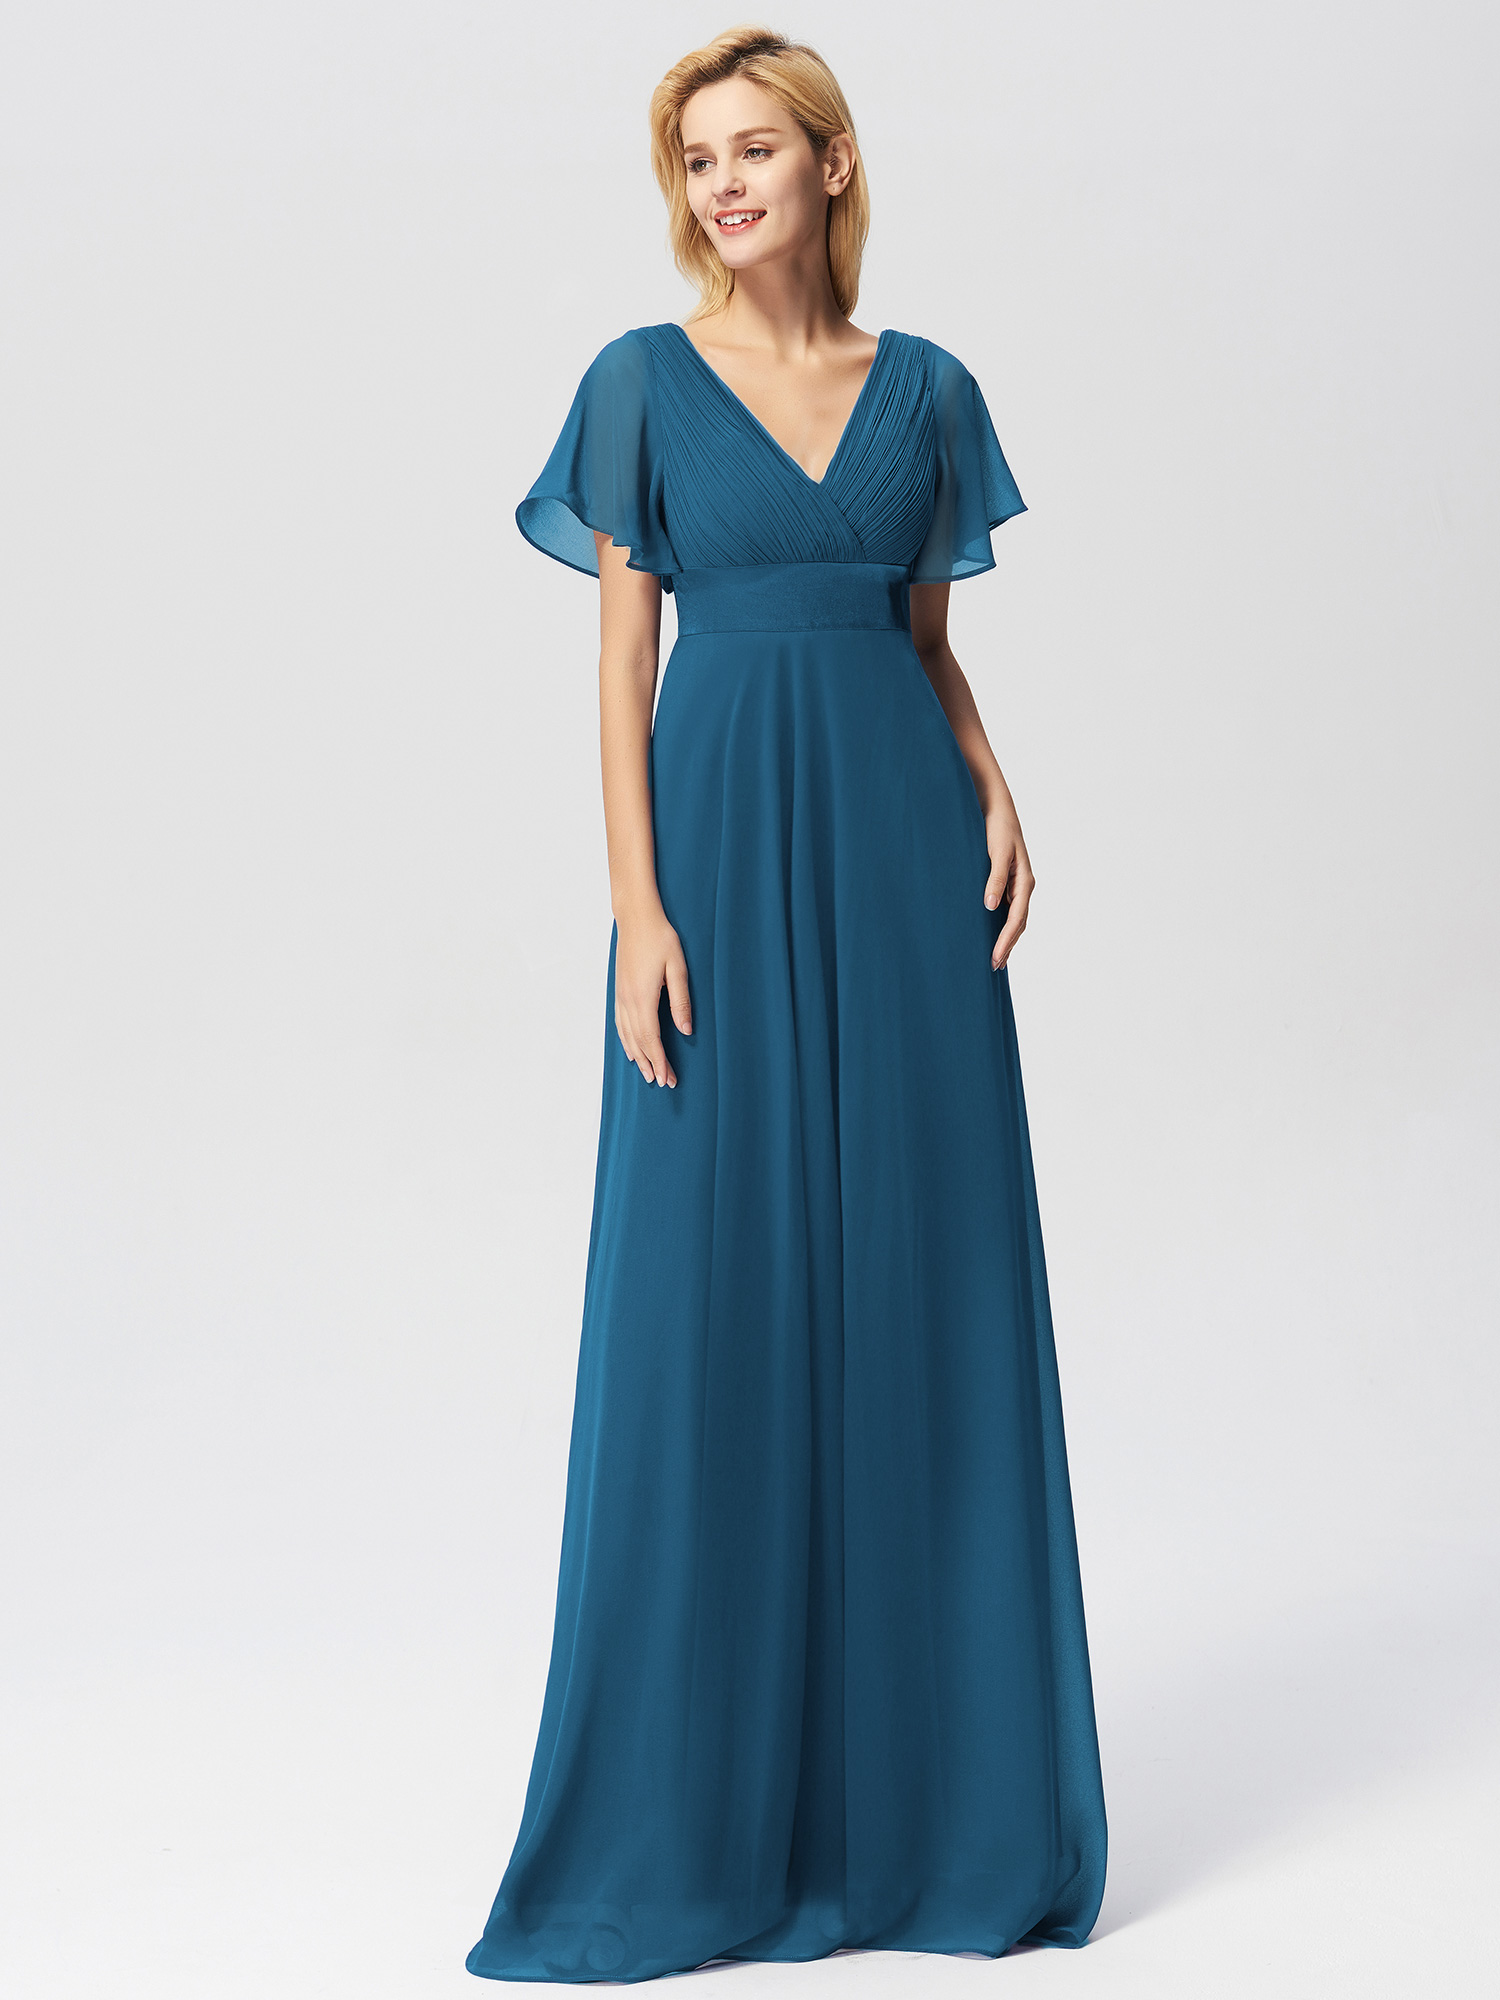 Ever-pretty-US-Short-Sleeve-Evening-Prom-Gown-Long-Formal-Cocktail-Party-Dresses thumbnail 11